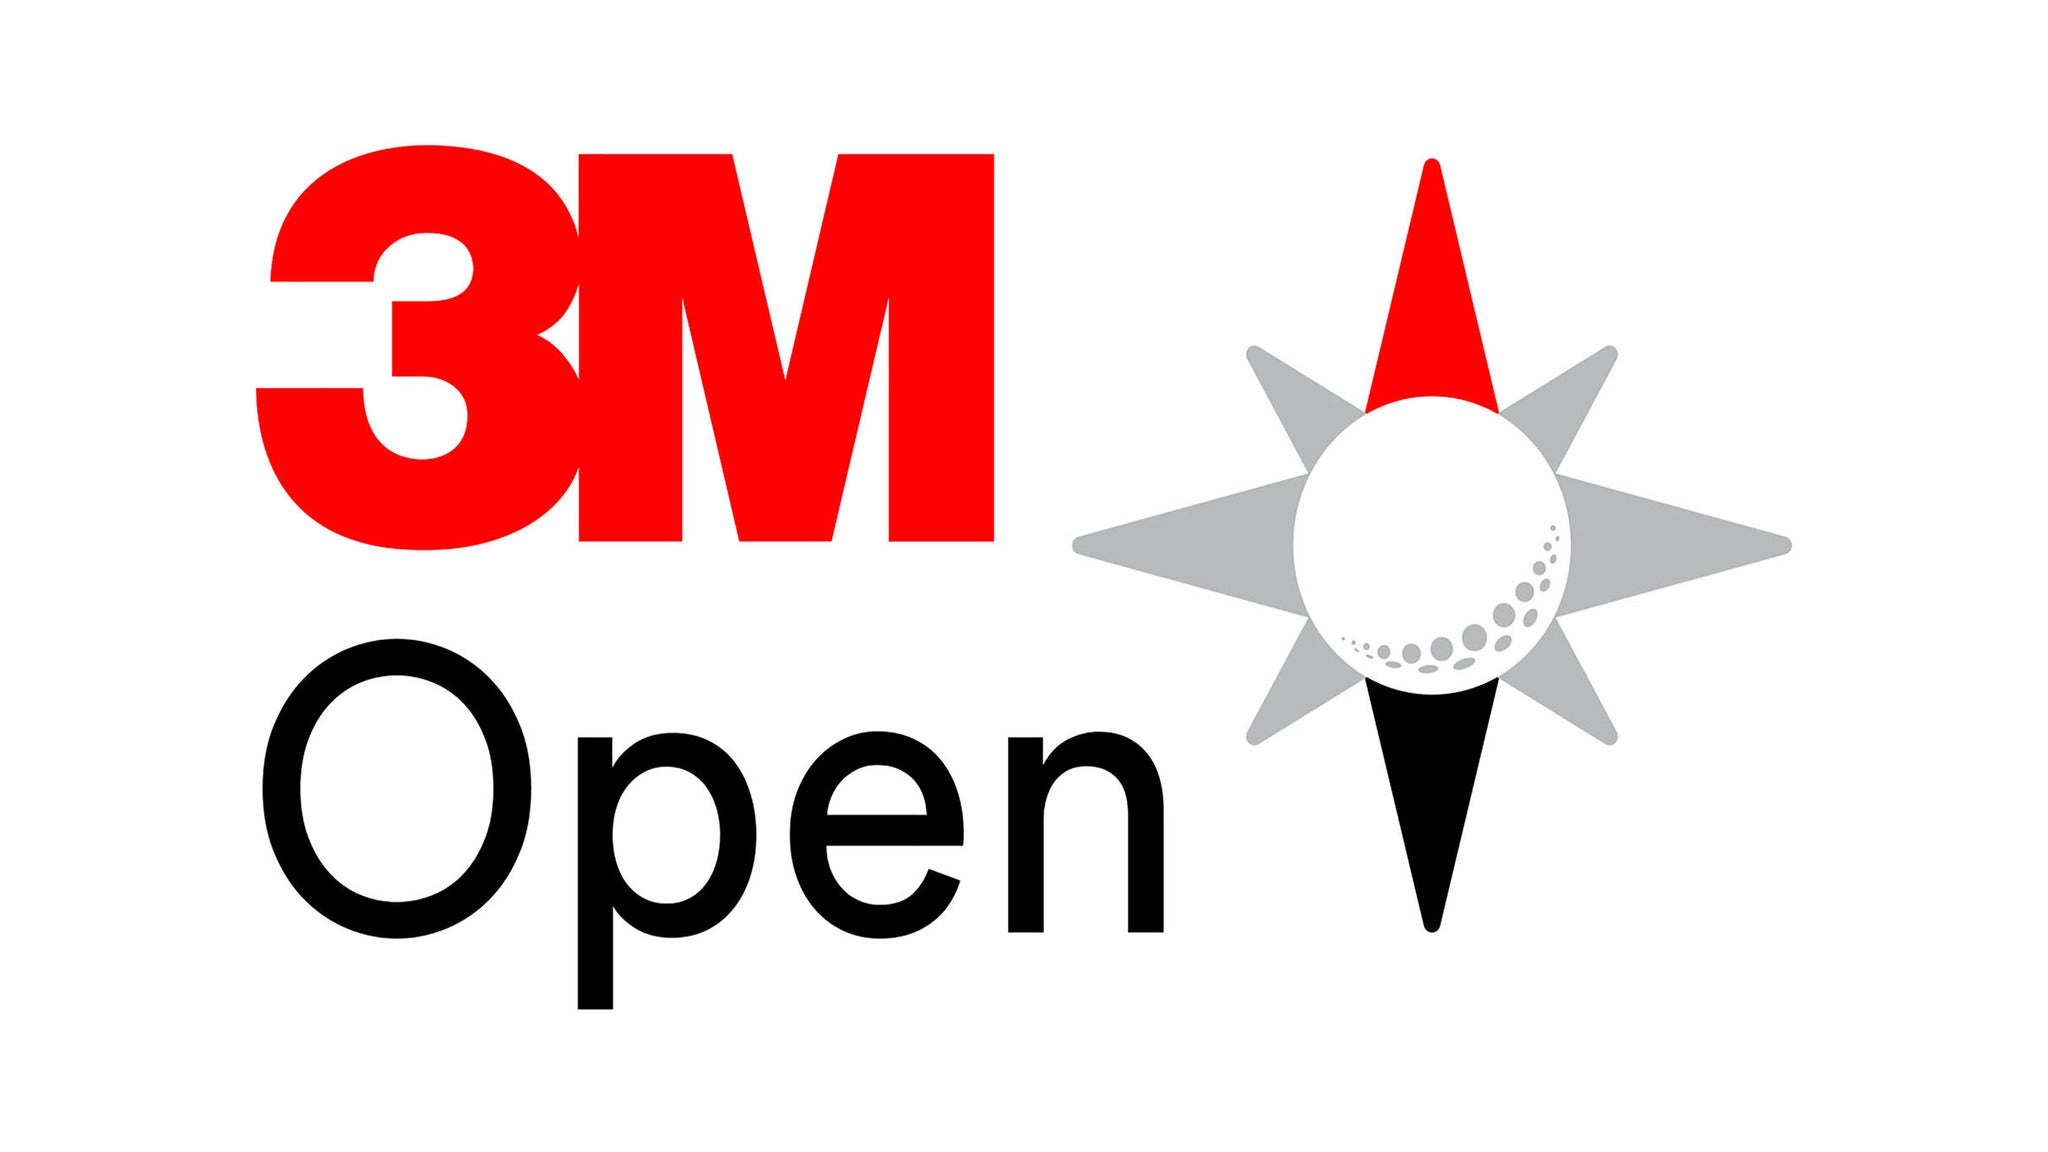 3M Open: Thursday